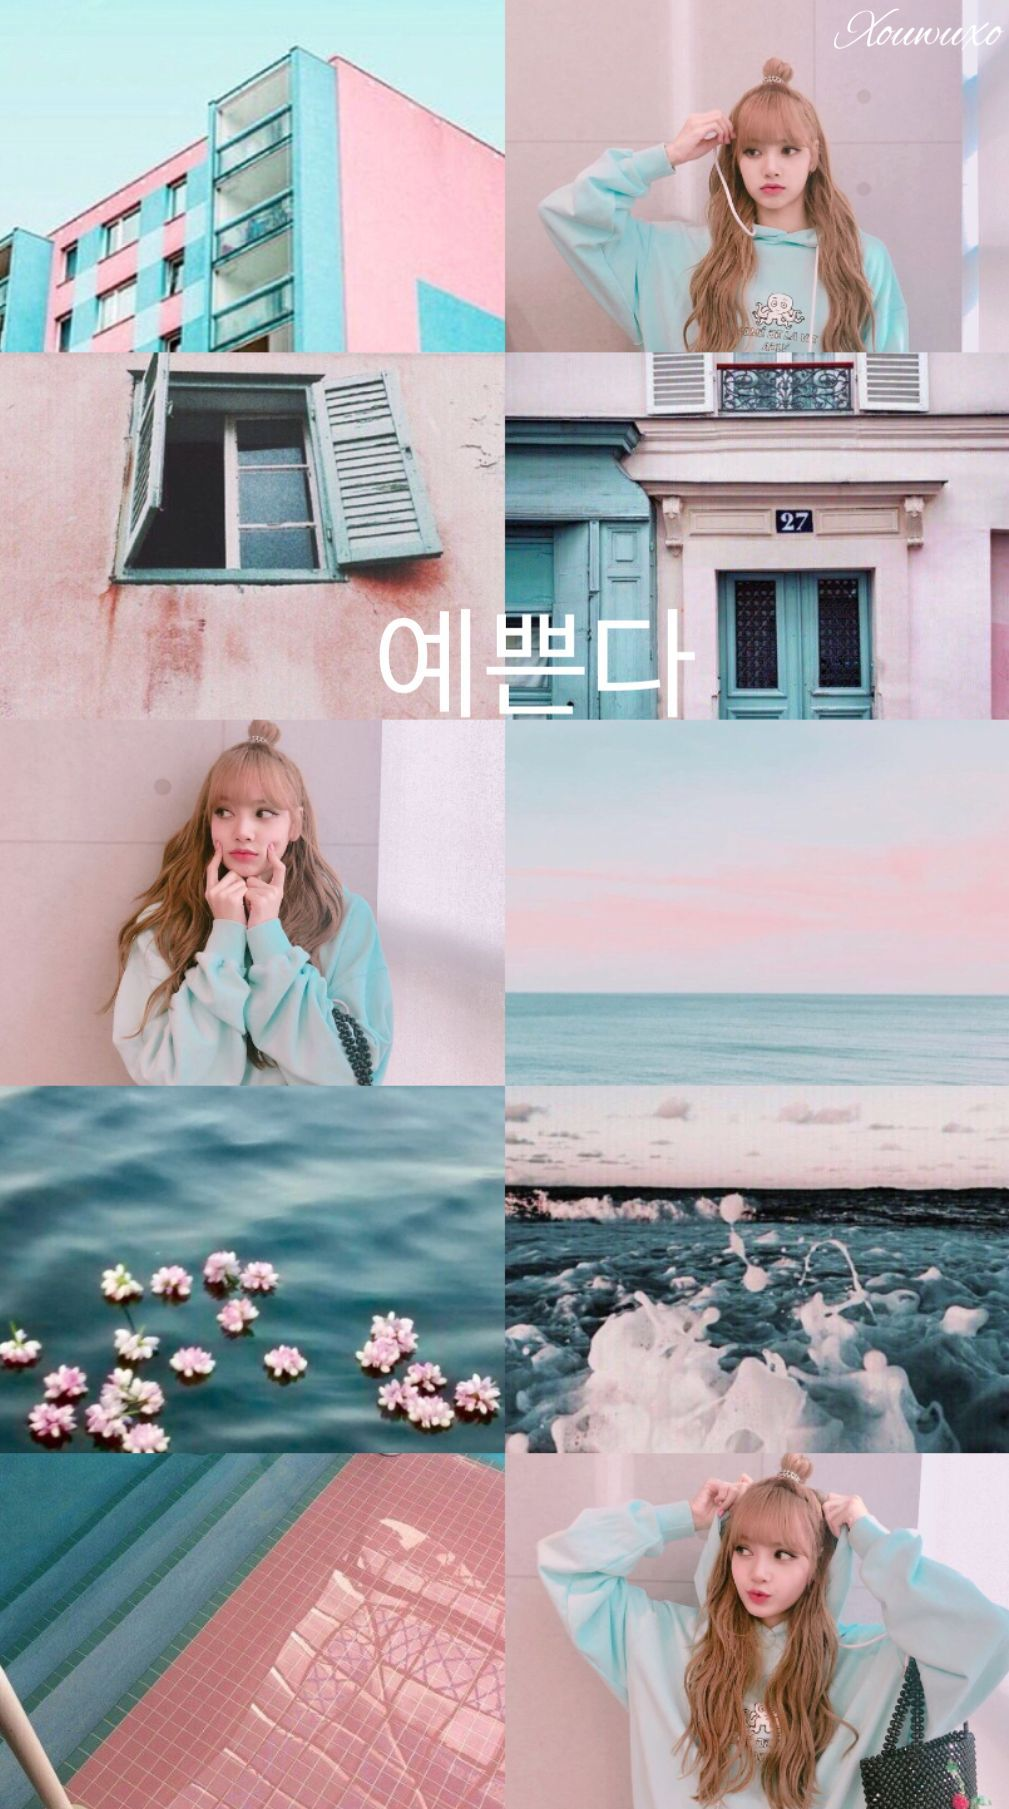 Blackpink Aesthetic Wallpapers Top Free Blackpink Aesthetic Backgrounds Wallpaperaccess